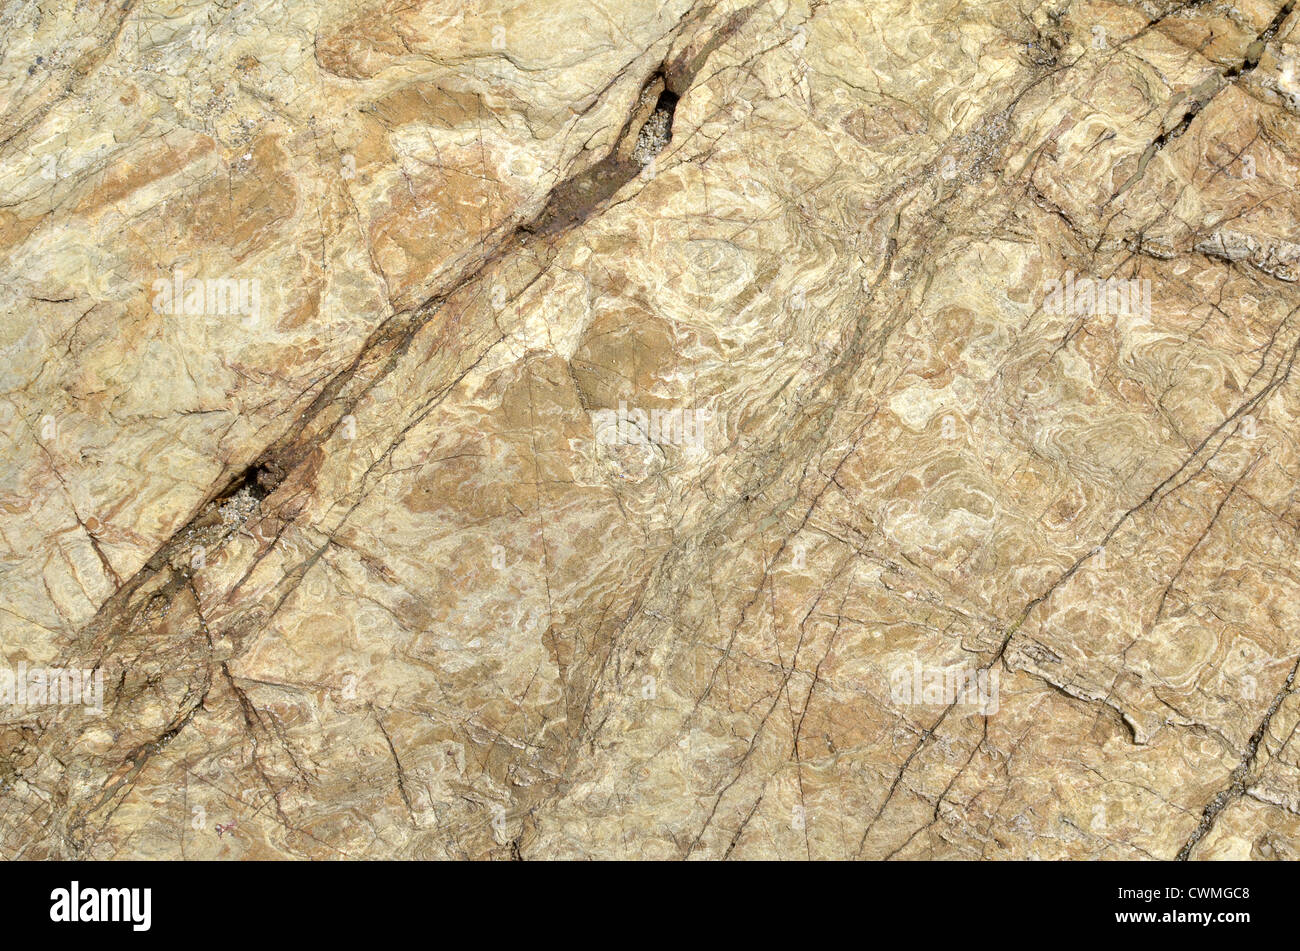 Cornwall - shoreline rock texture wallpaper background in region between Par Sands and Polkerris. Concept 'fall - Stock Image